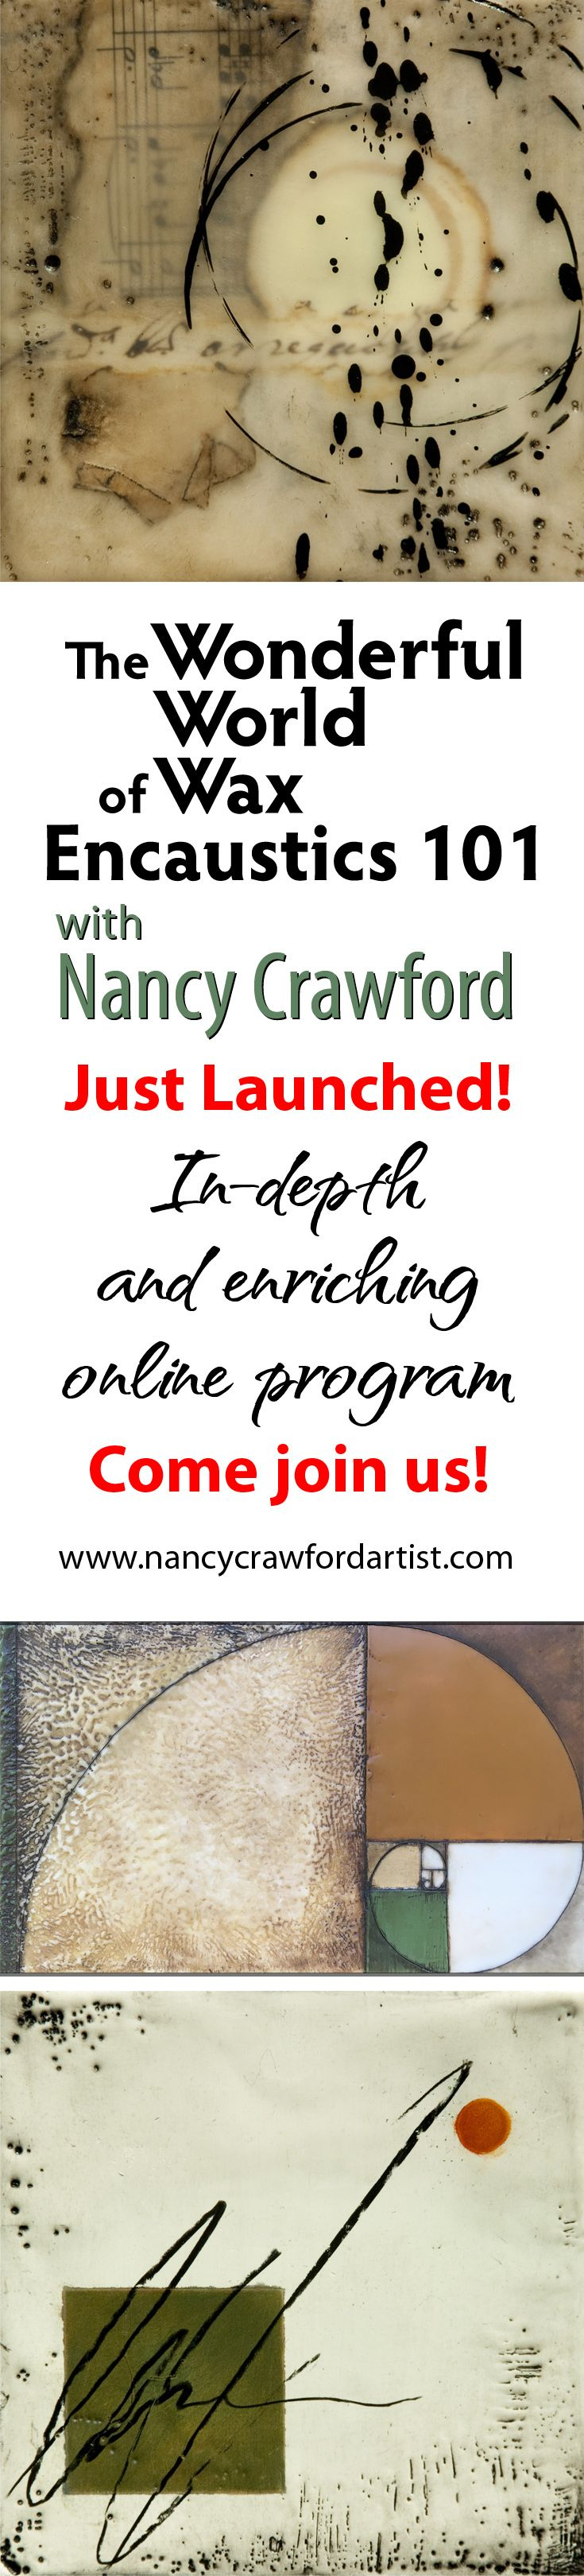 I hope that you will come and join us... an international group of encaustic artists who will be creating, exploring and sharing with one another our adventures and creativity in wax! For more information please visit www.nancycrawfordartist.com